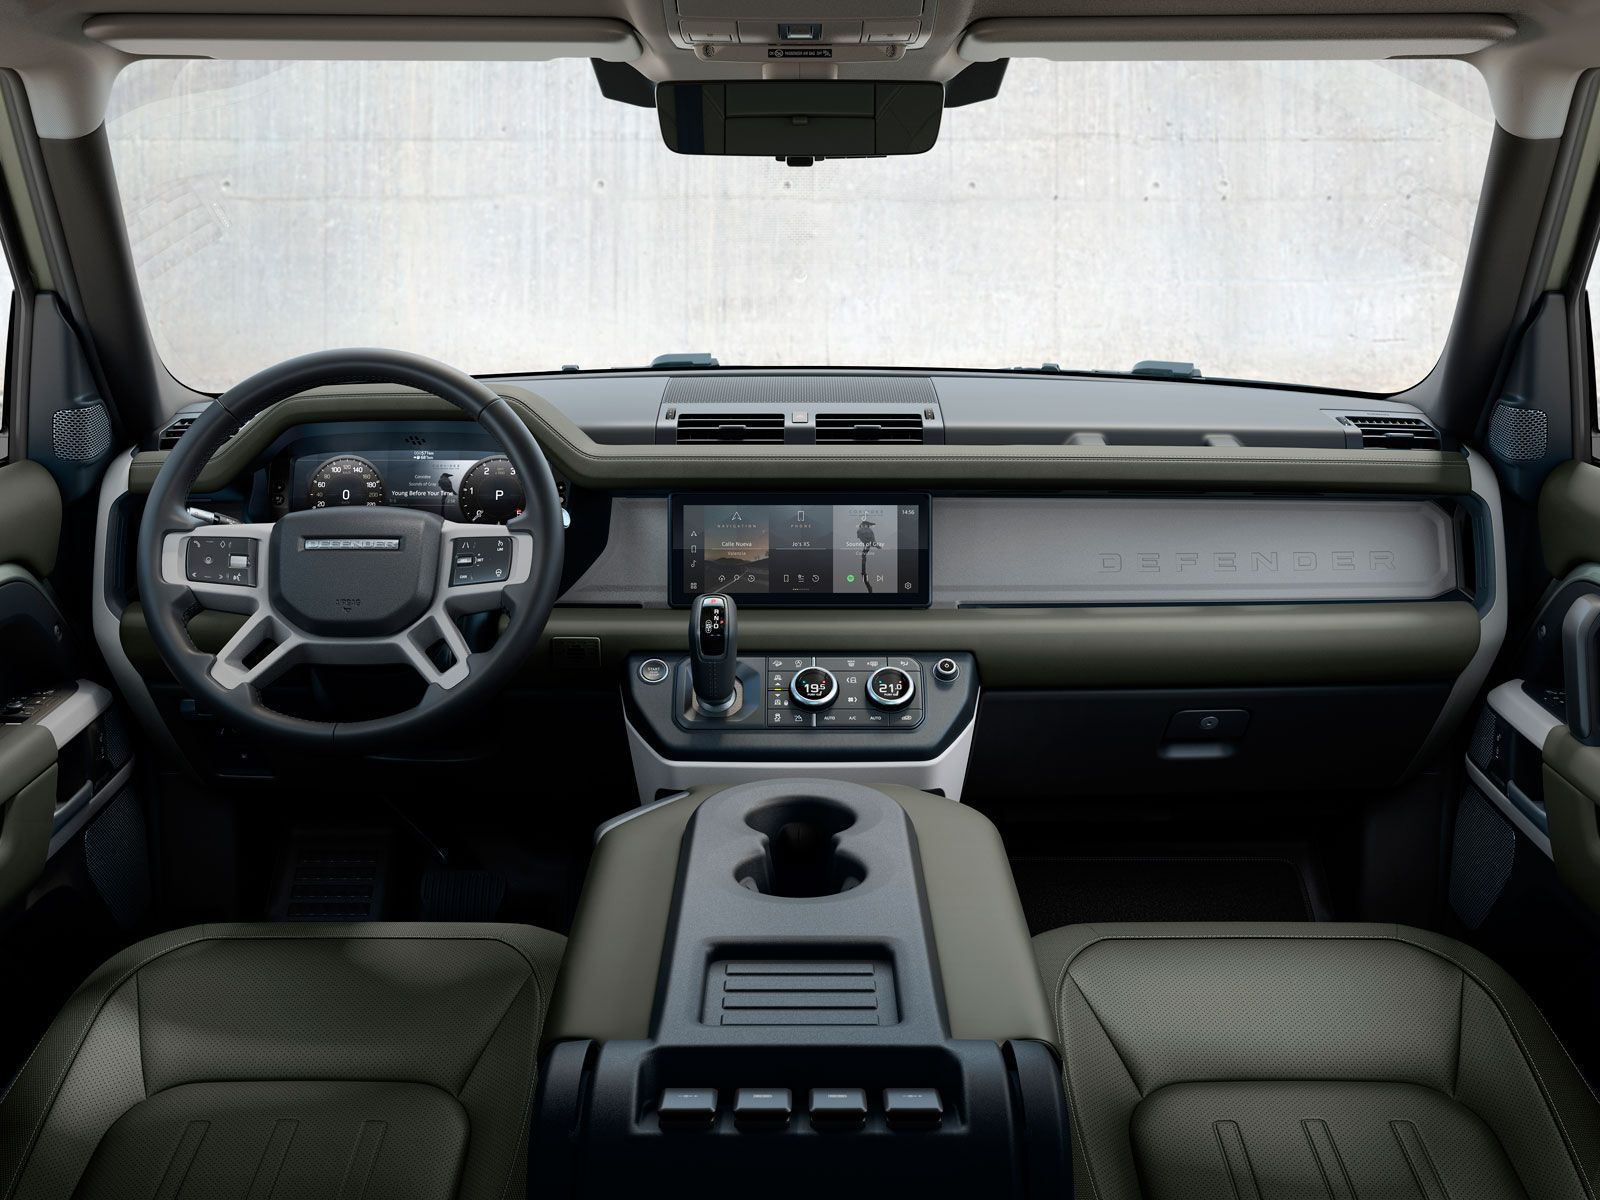 Land Rover Defender Features